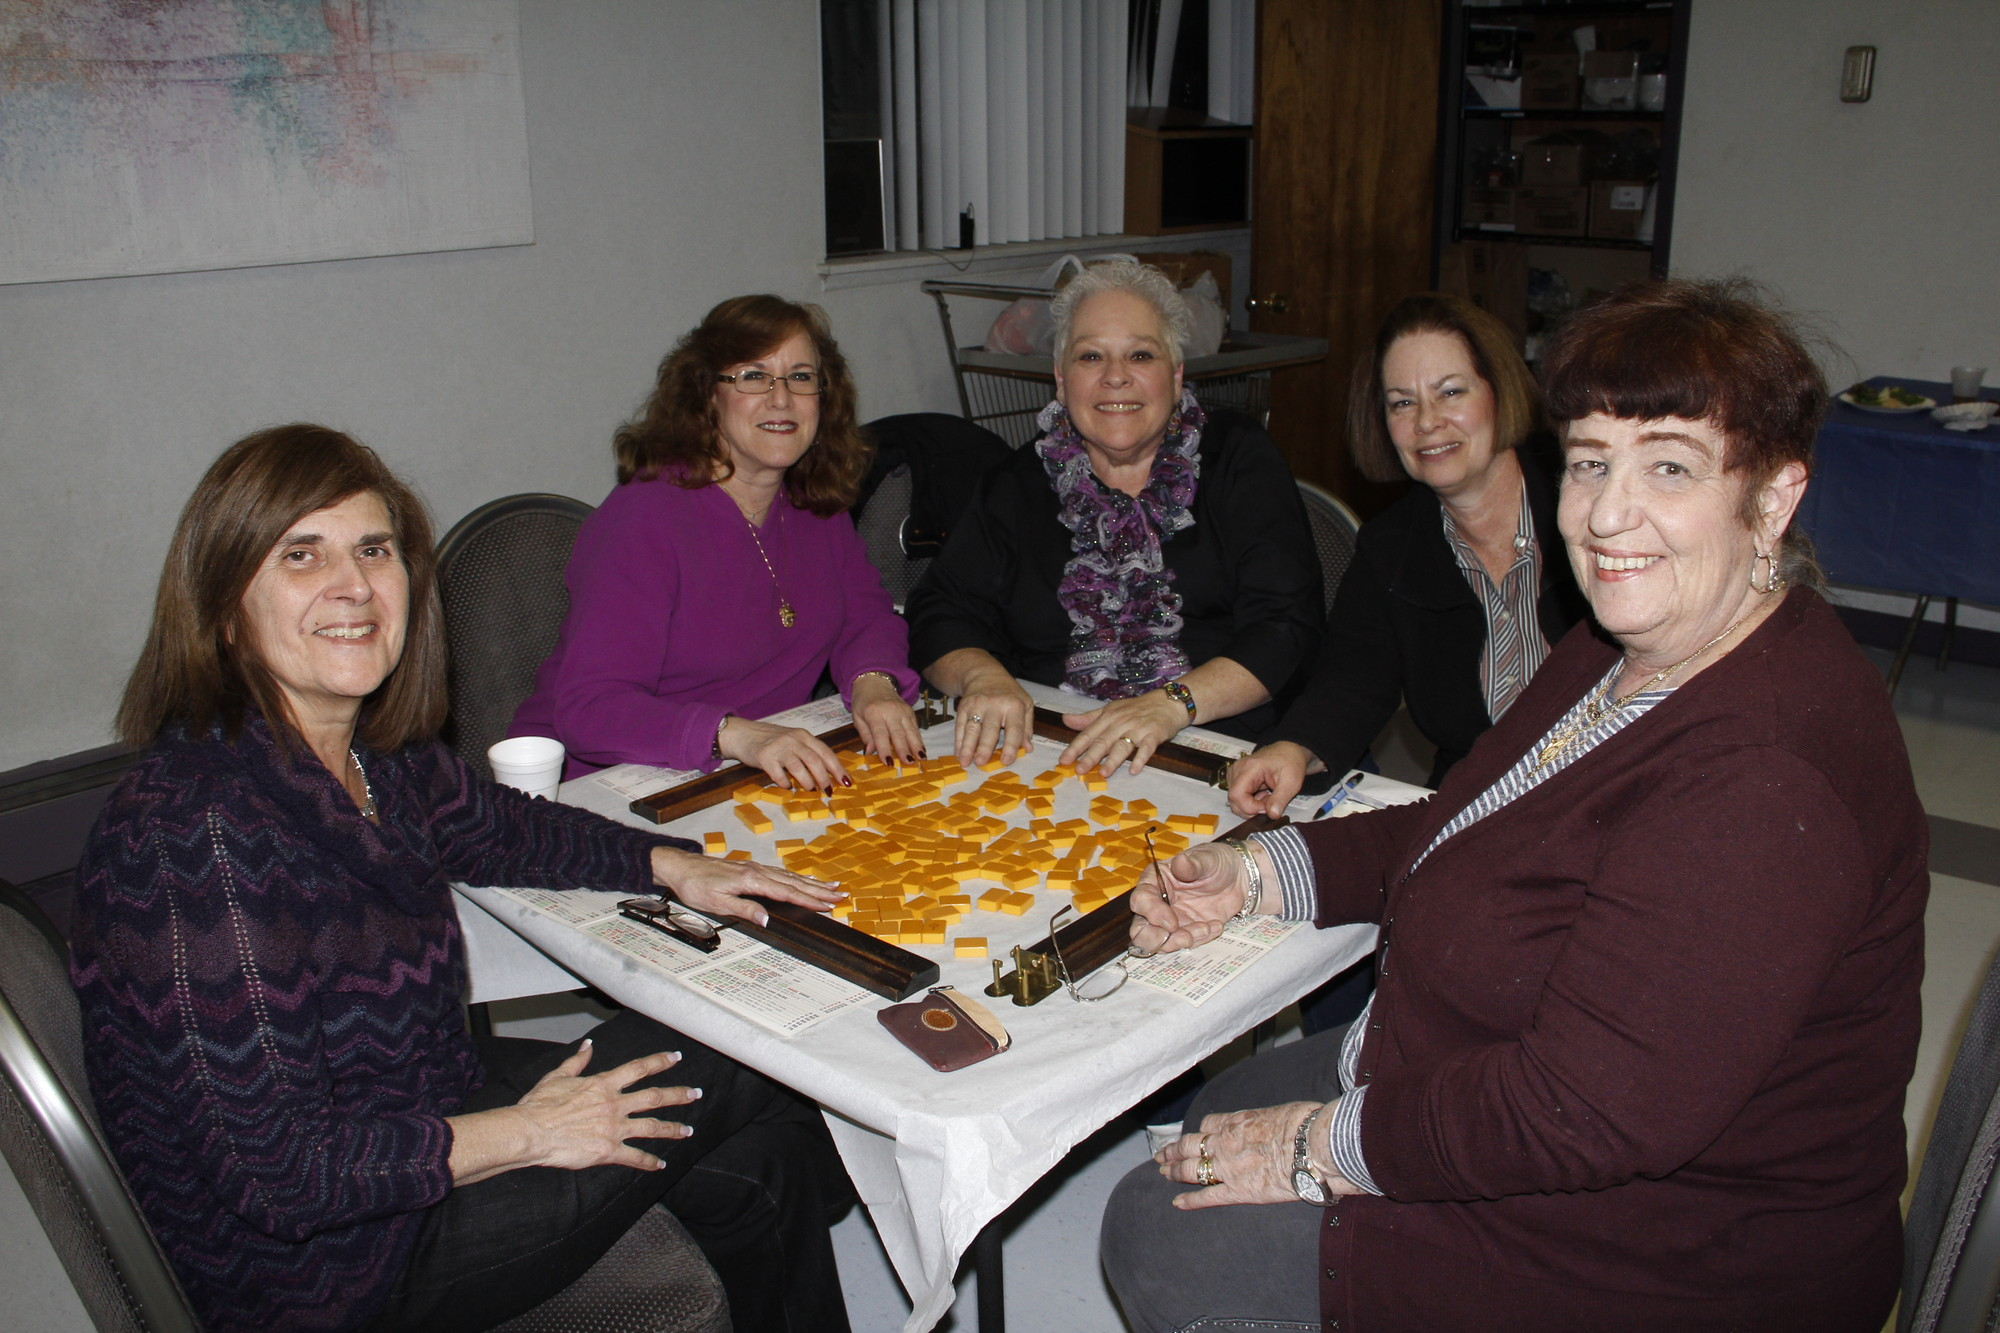 Hadassah members Libby Biemenfeld, Susan Weiss, Marilyn Gordon, Anna Cohen and Marcia Sherman play a game of maj jongg.